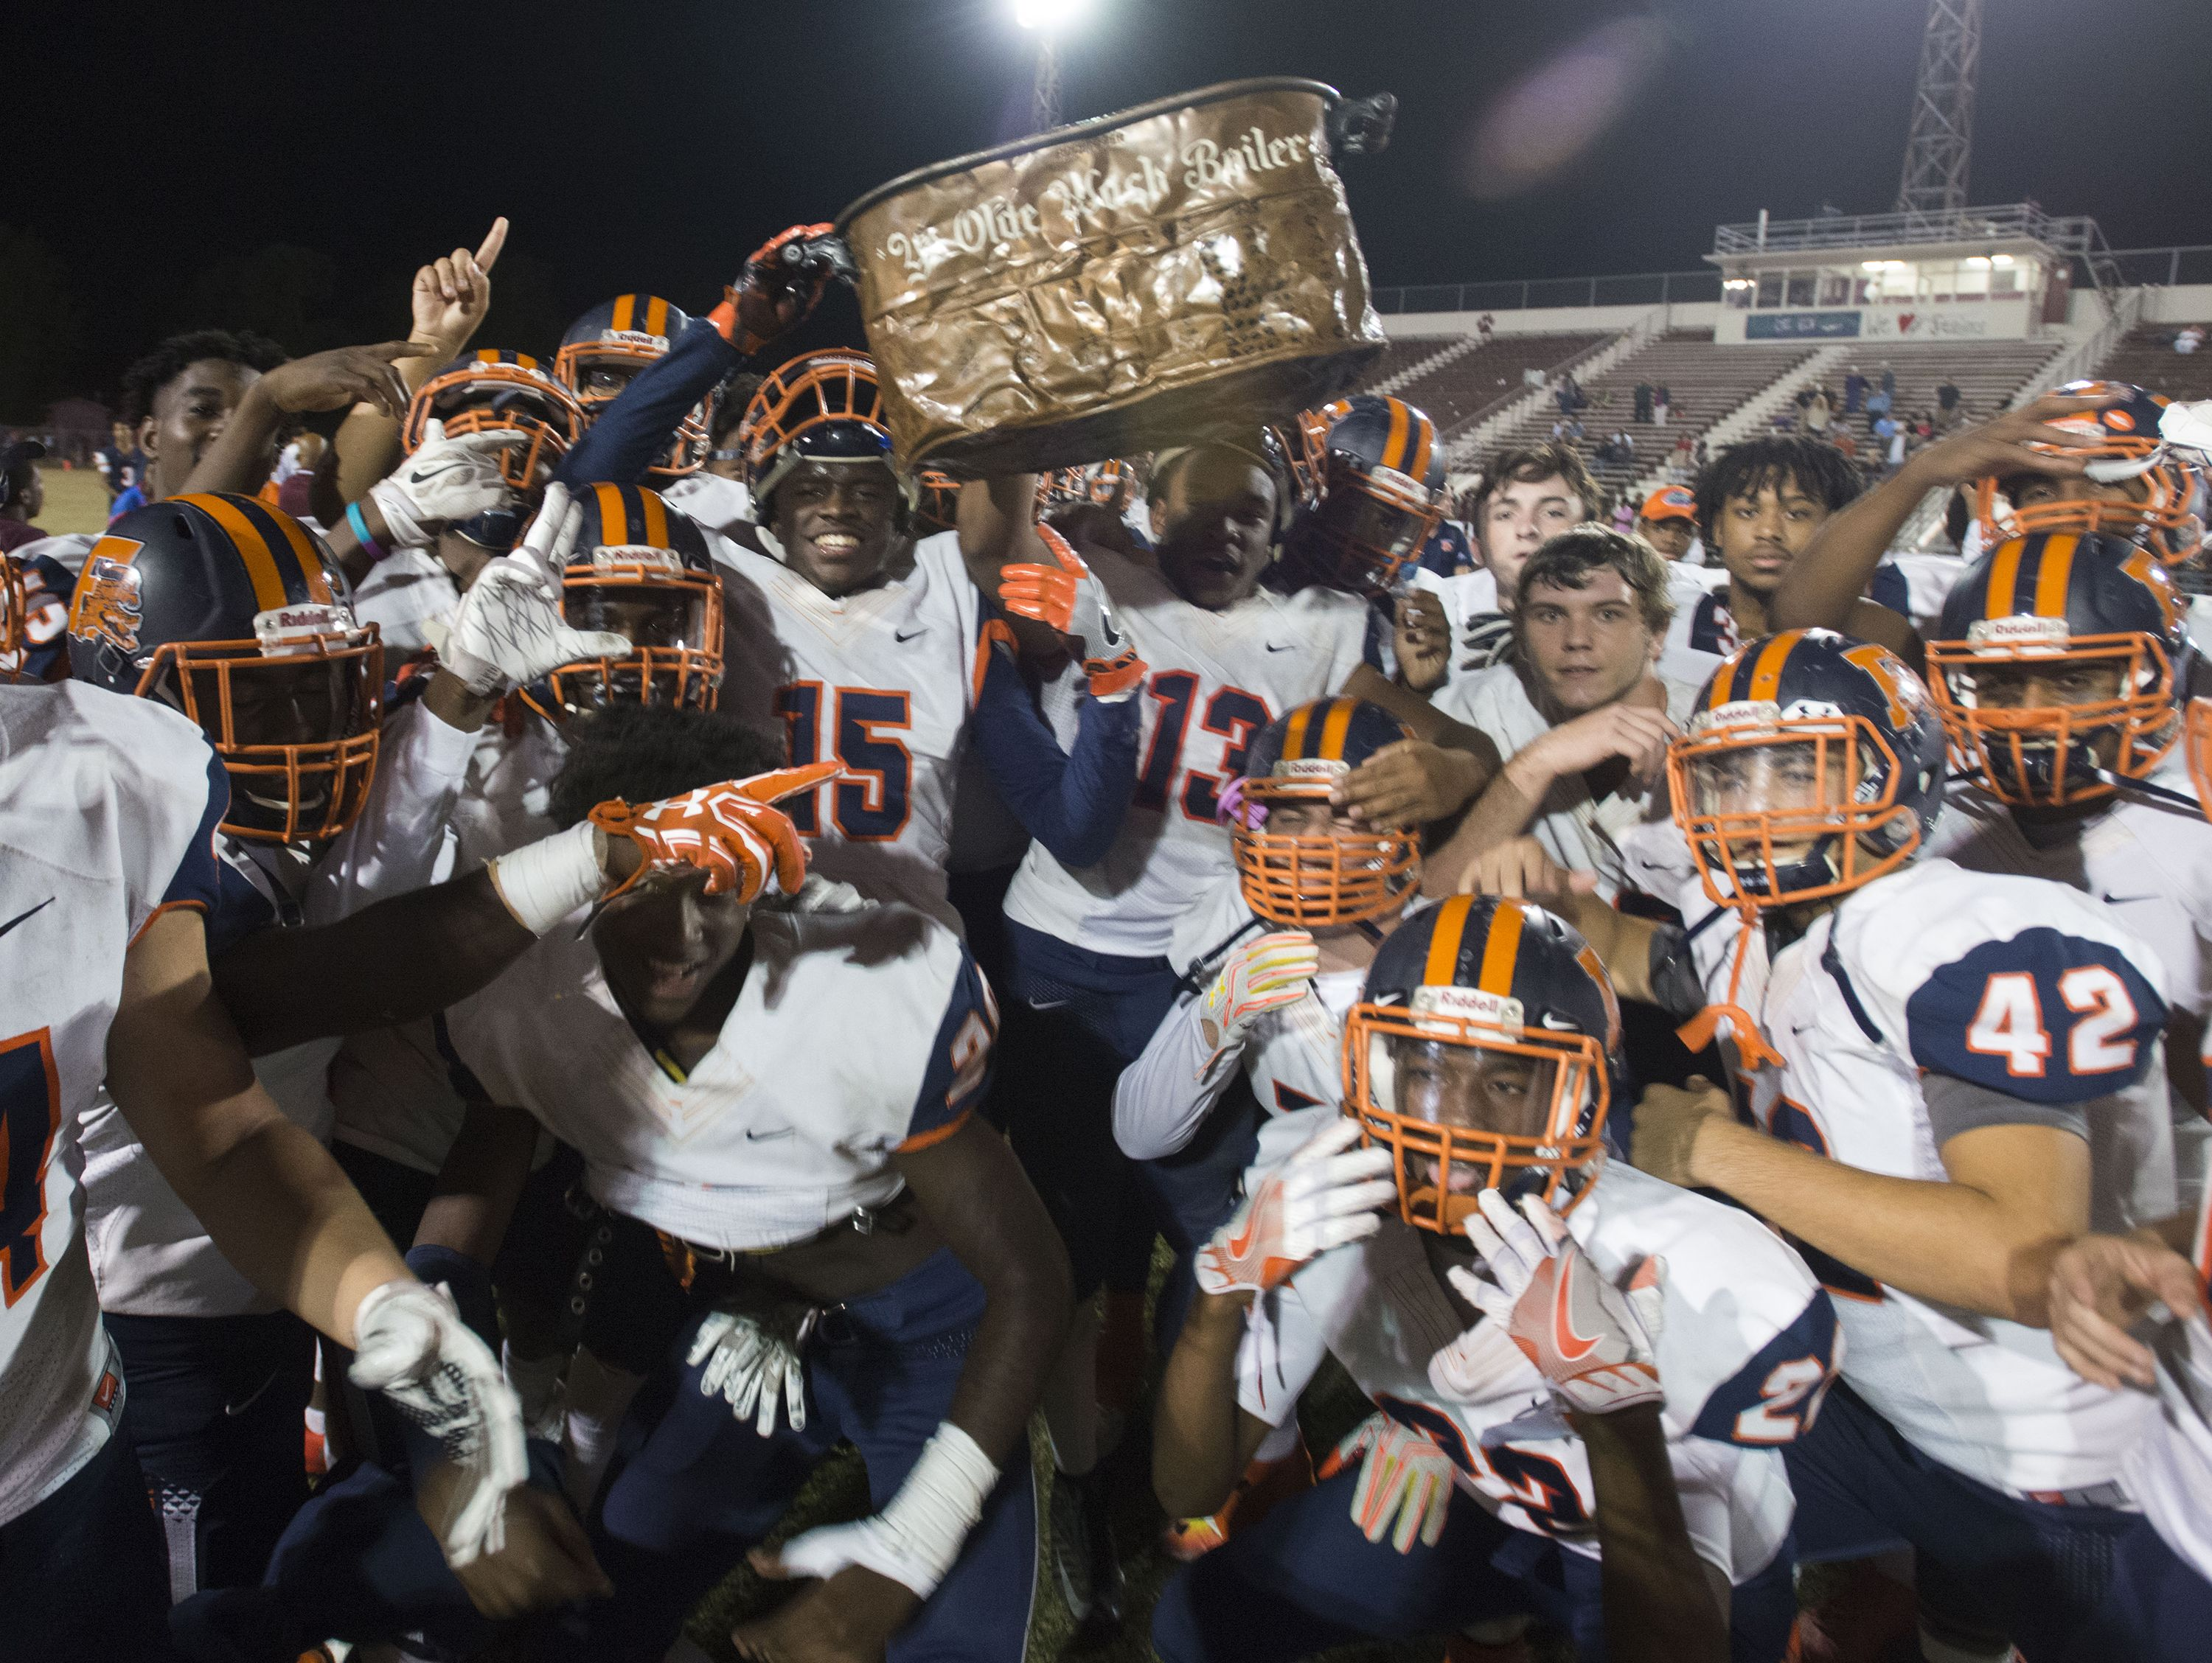 """The Escambia High School football team celebrates their victory over Pensacola High School Friday night and another year of keeping the """"Ye Olde Wash Boiler"""" prize."""